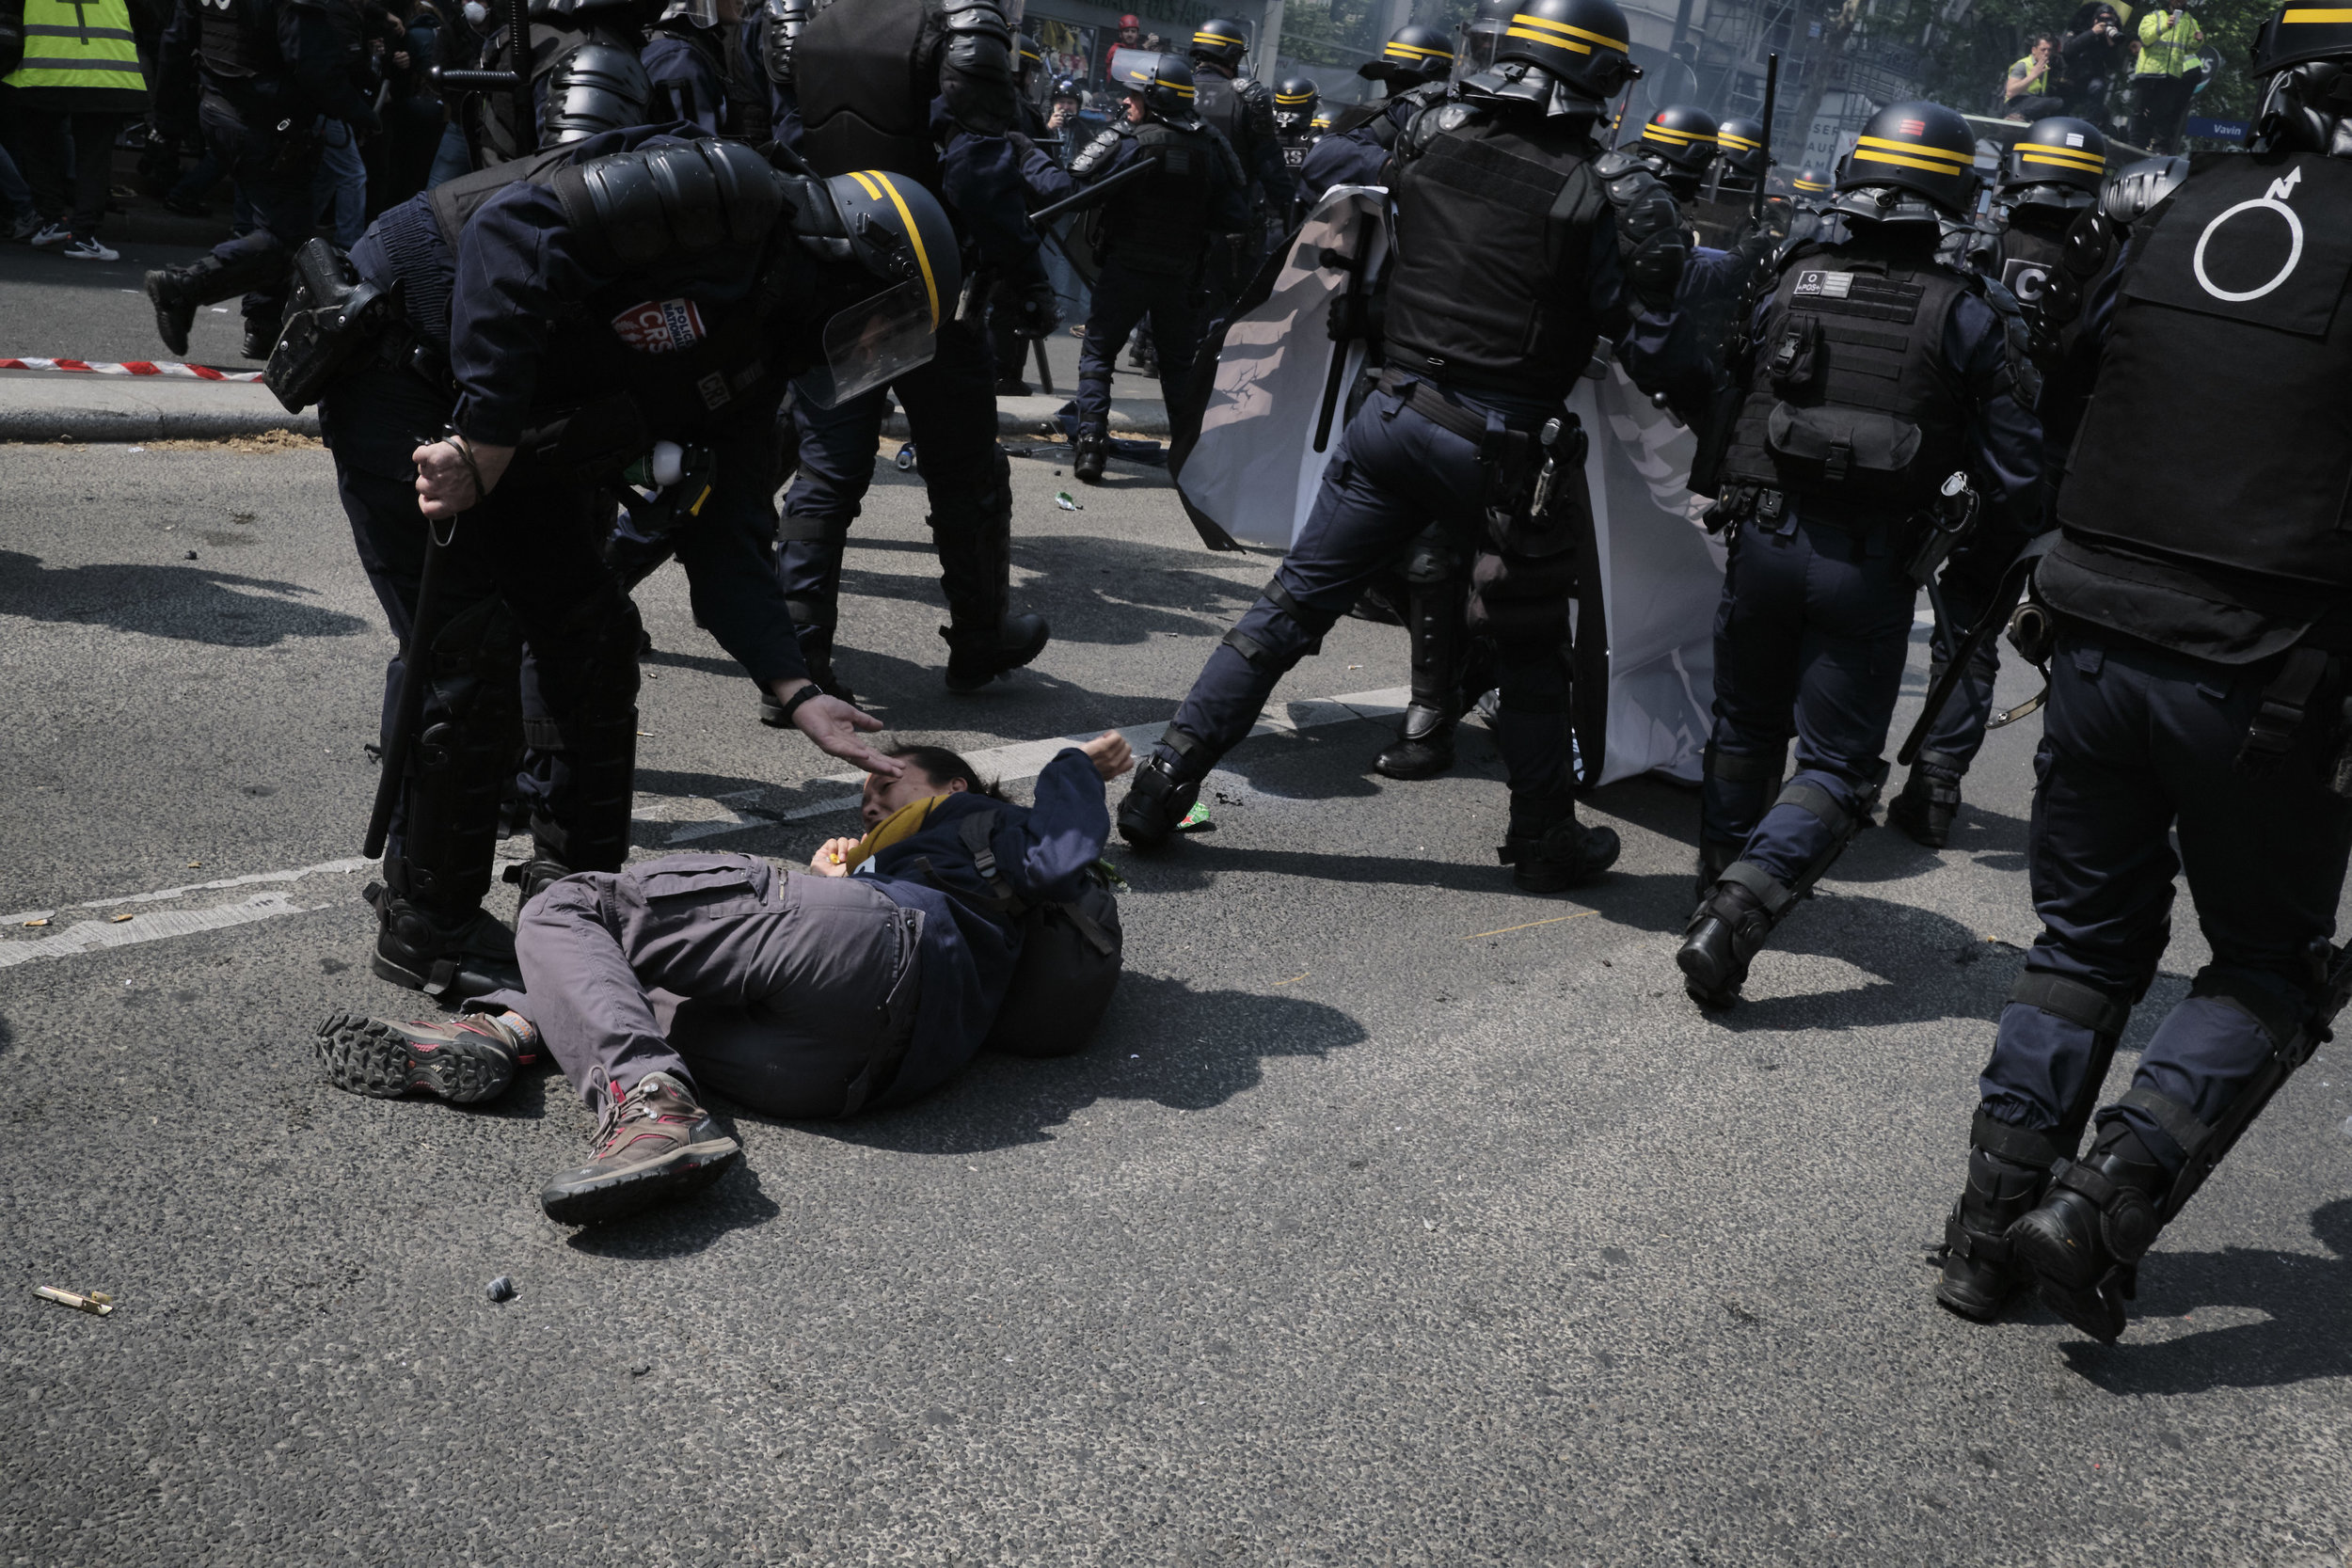 Officer helping a protest participant up after she has been knocked down by the police during an attempt to control the crow.